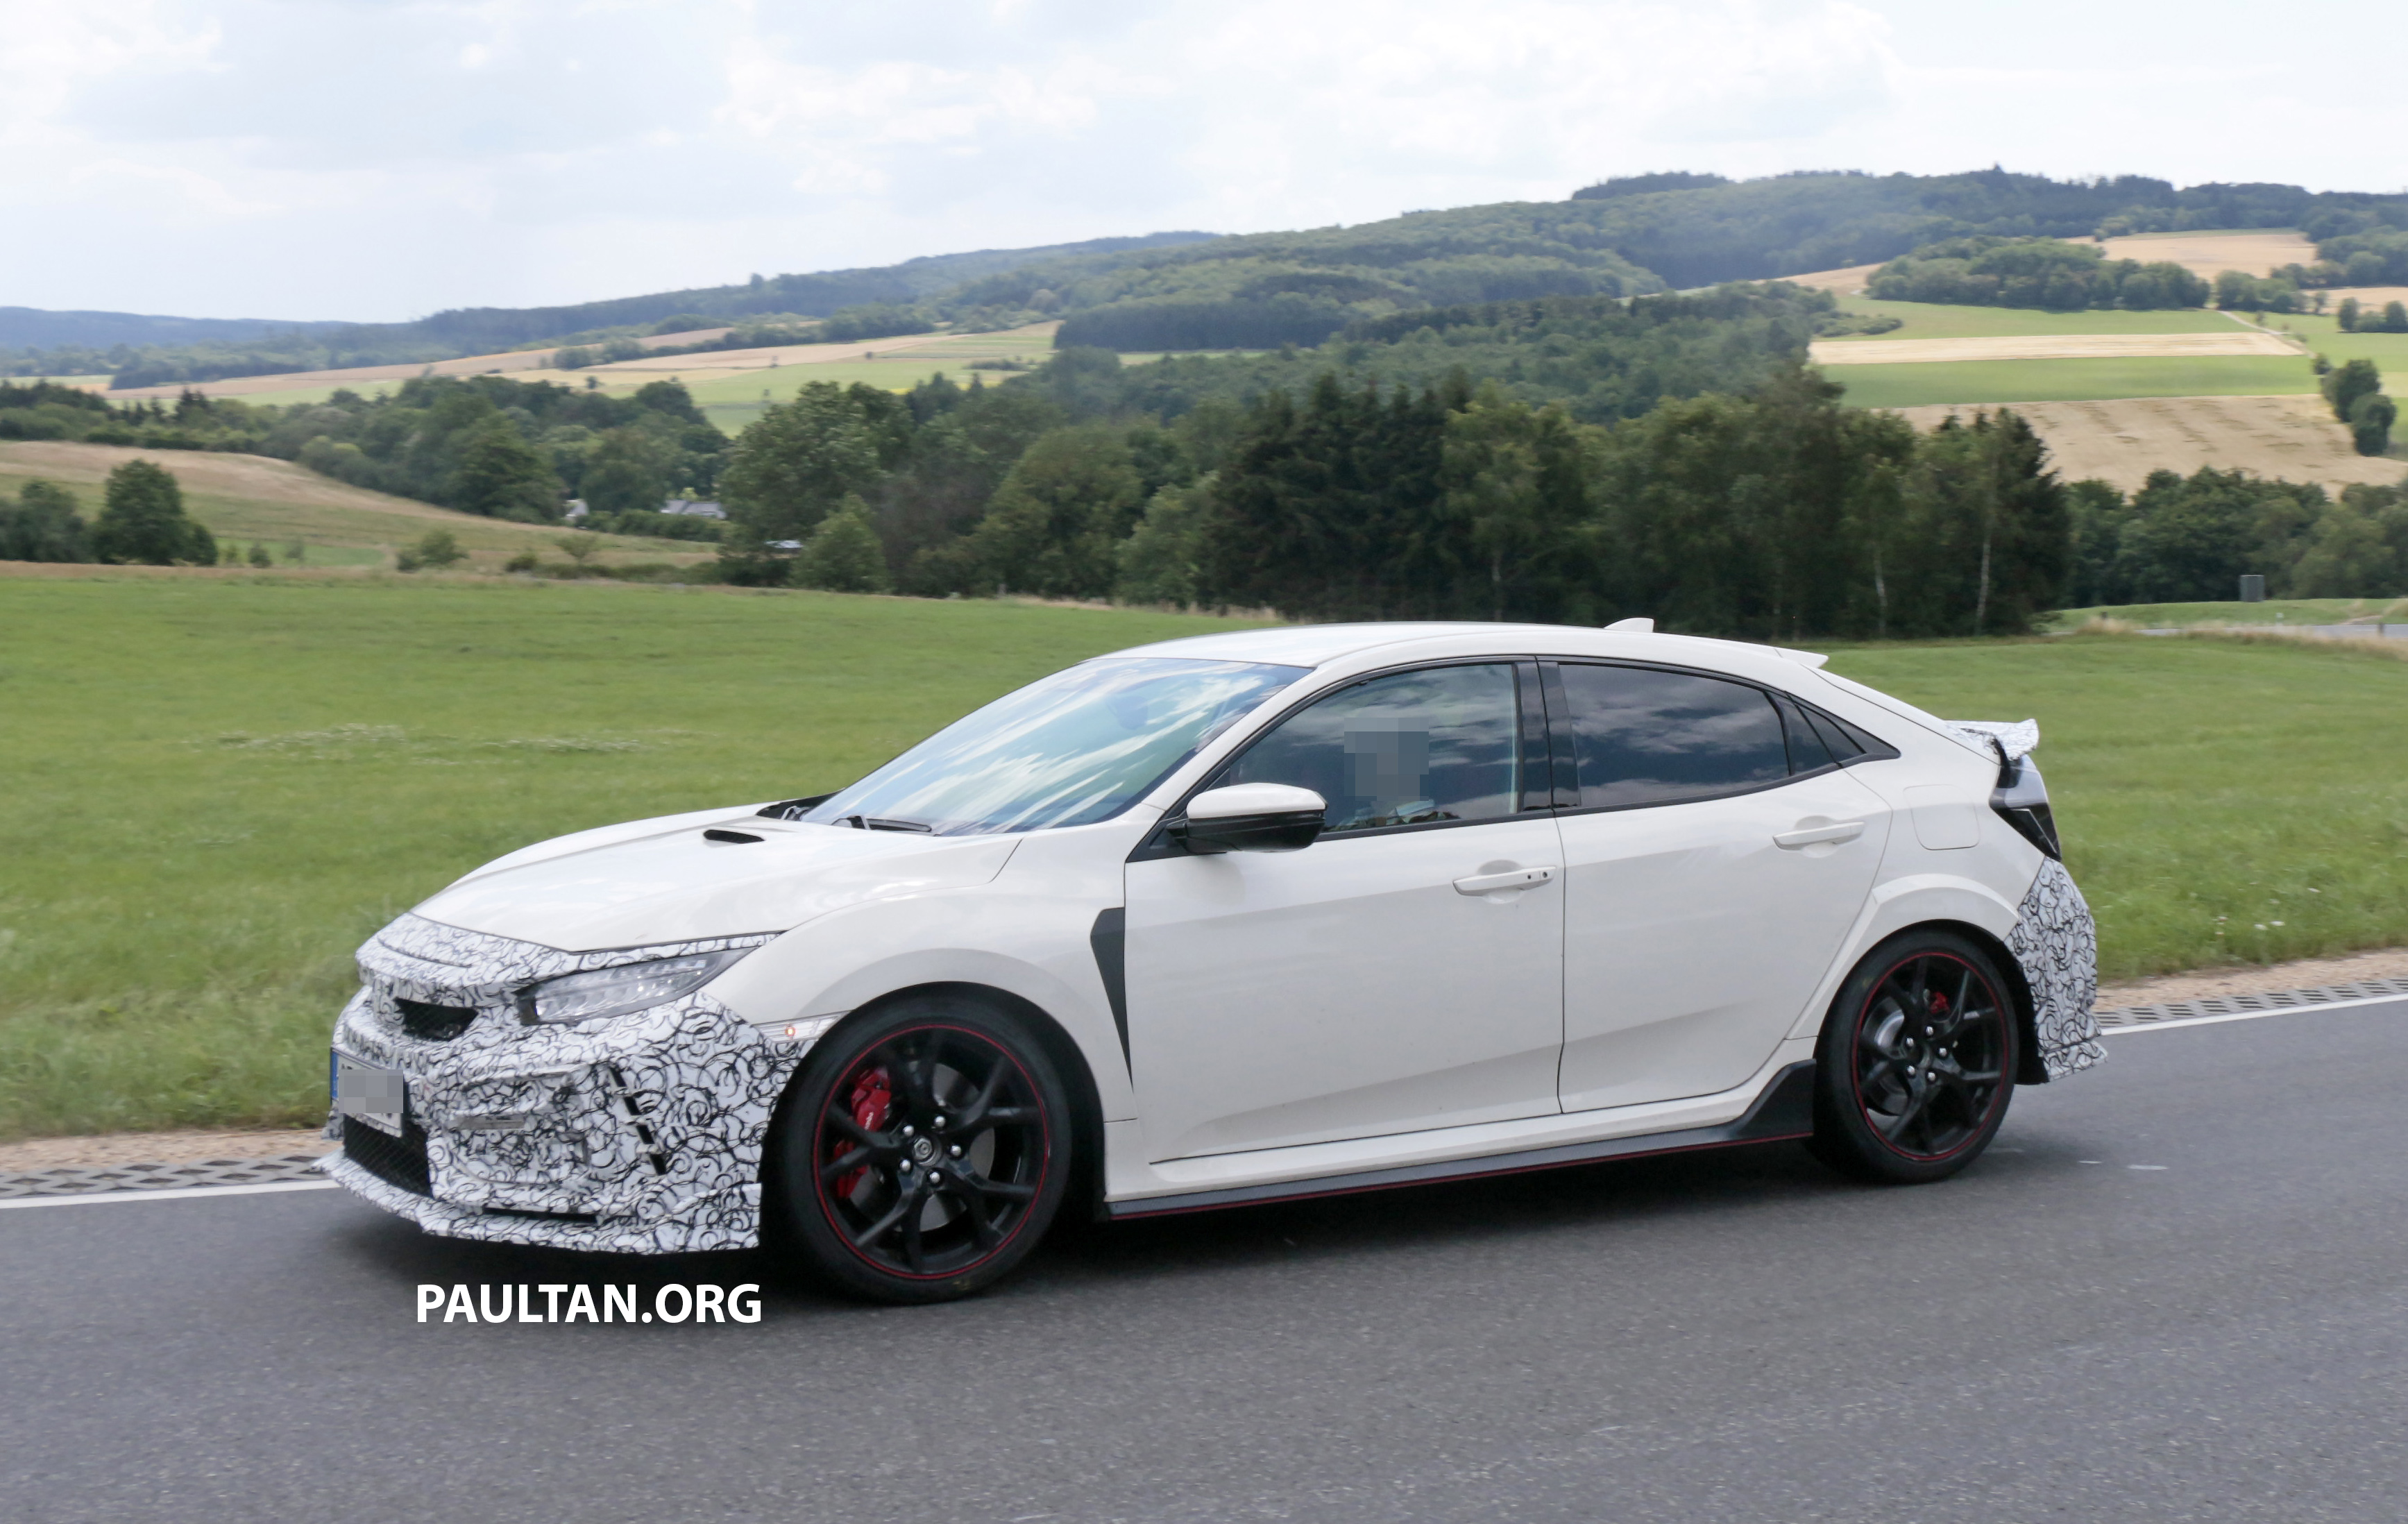 SPIED: Honda Civic Type R update – two wing designs Paul ...